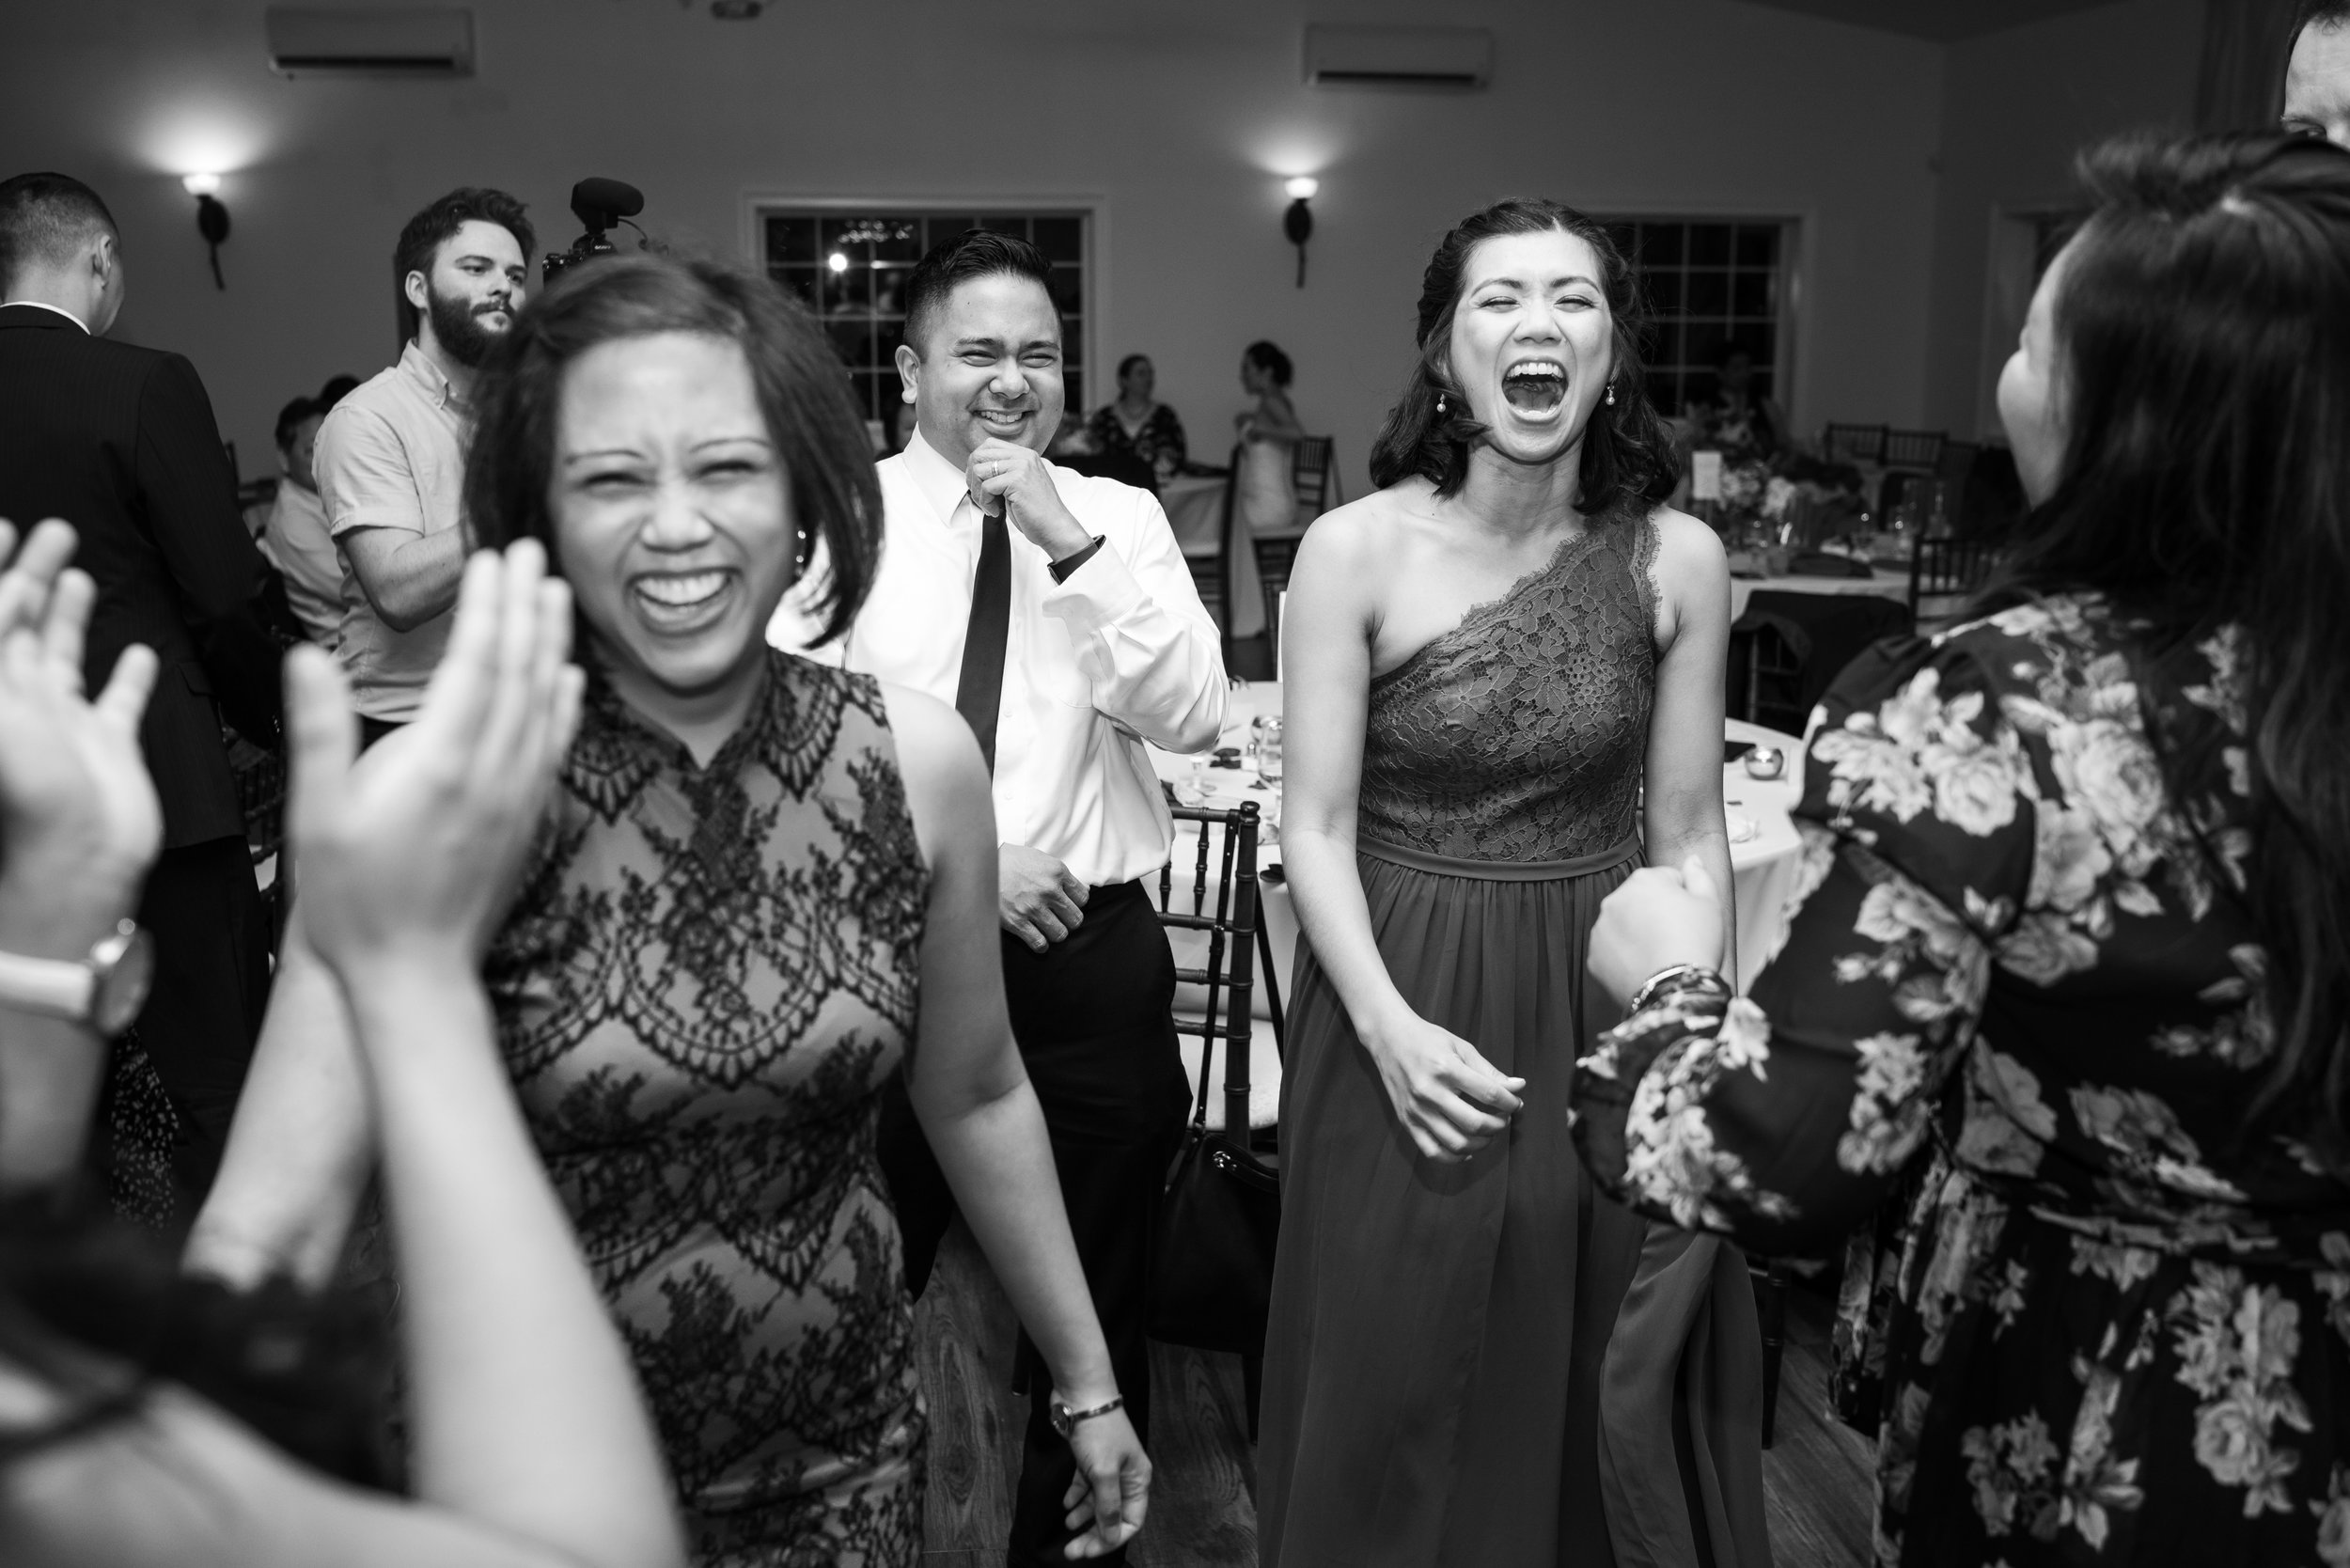 Guests laughing at a wedding at Harvest House Lost Creek Winery